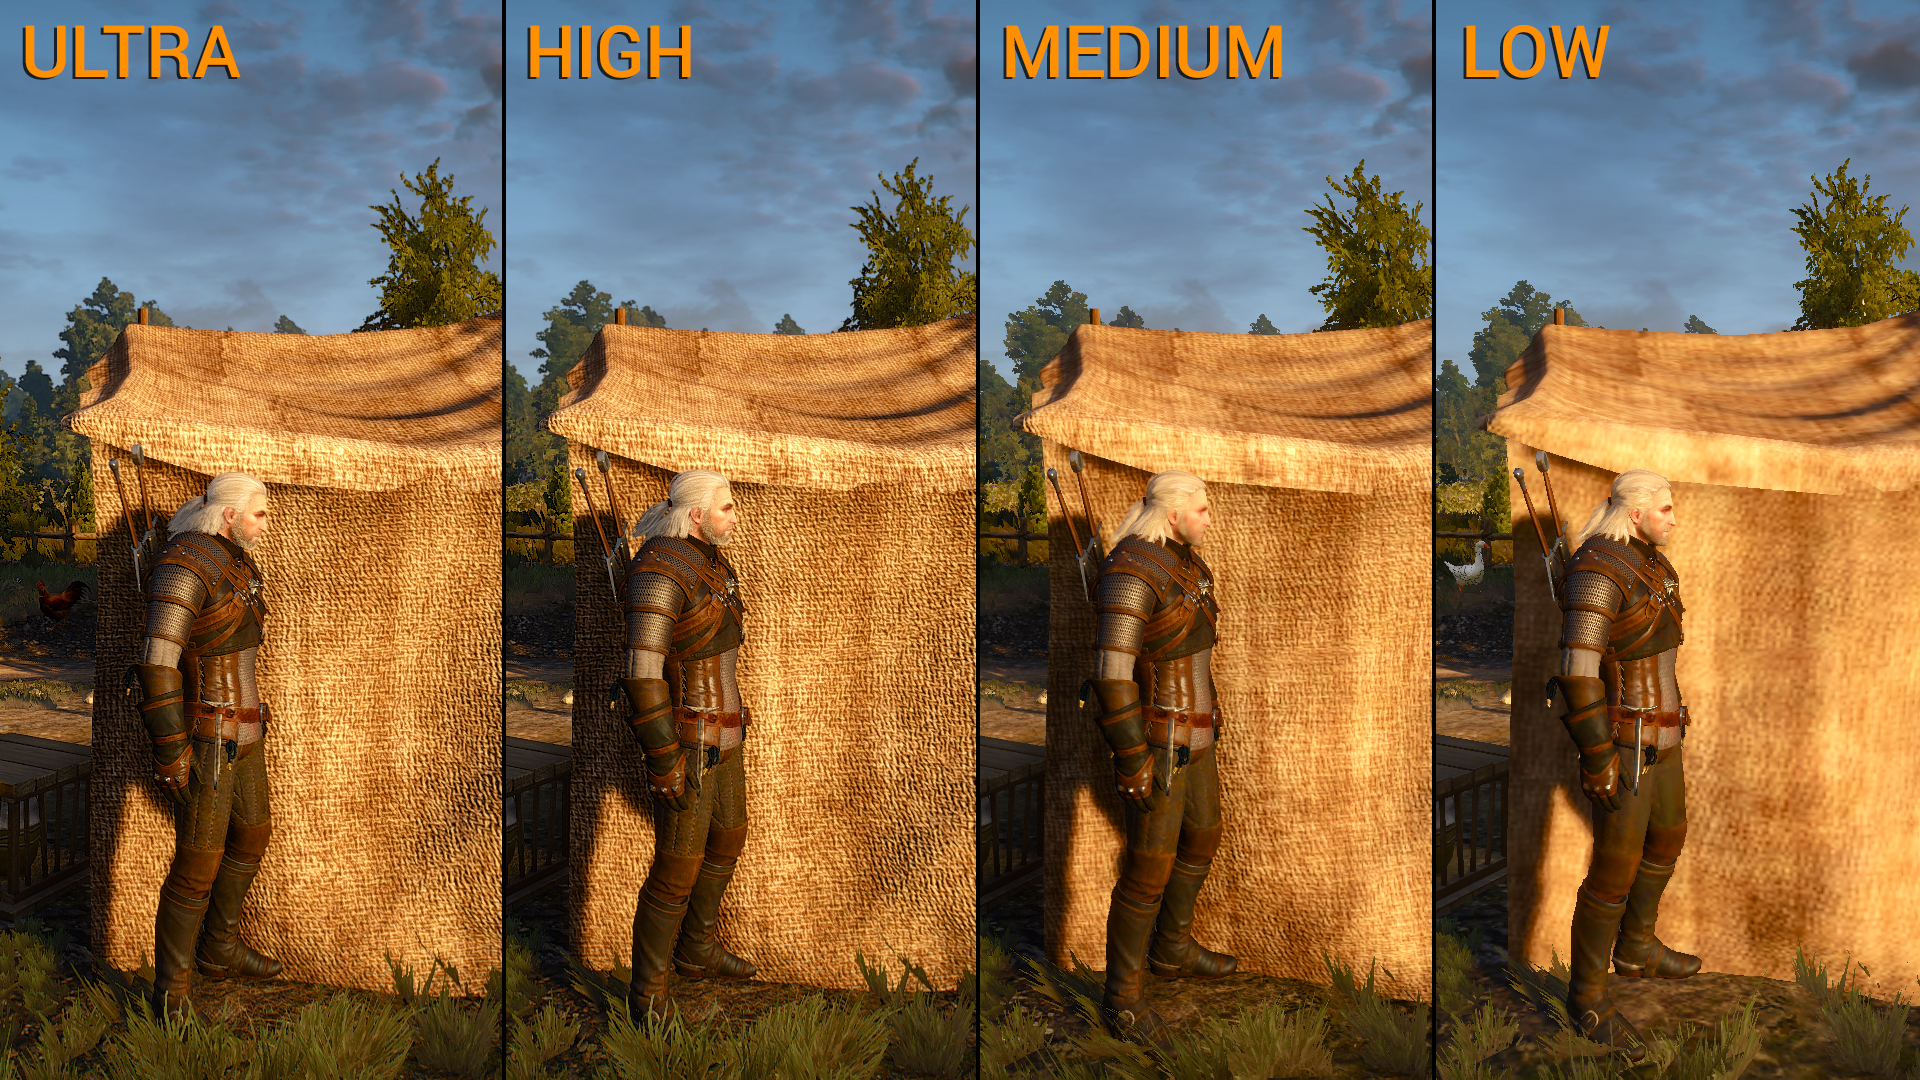 witcher3_texturequality-comparison